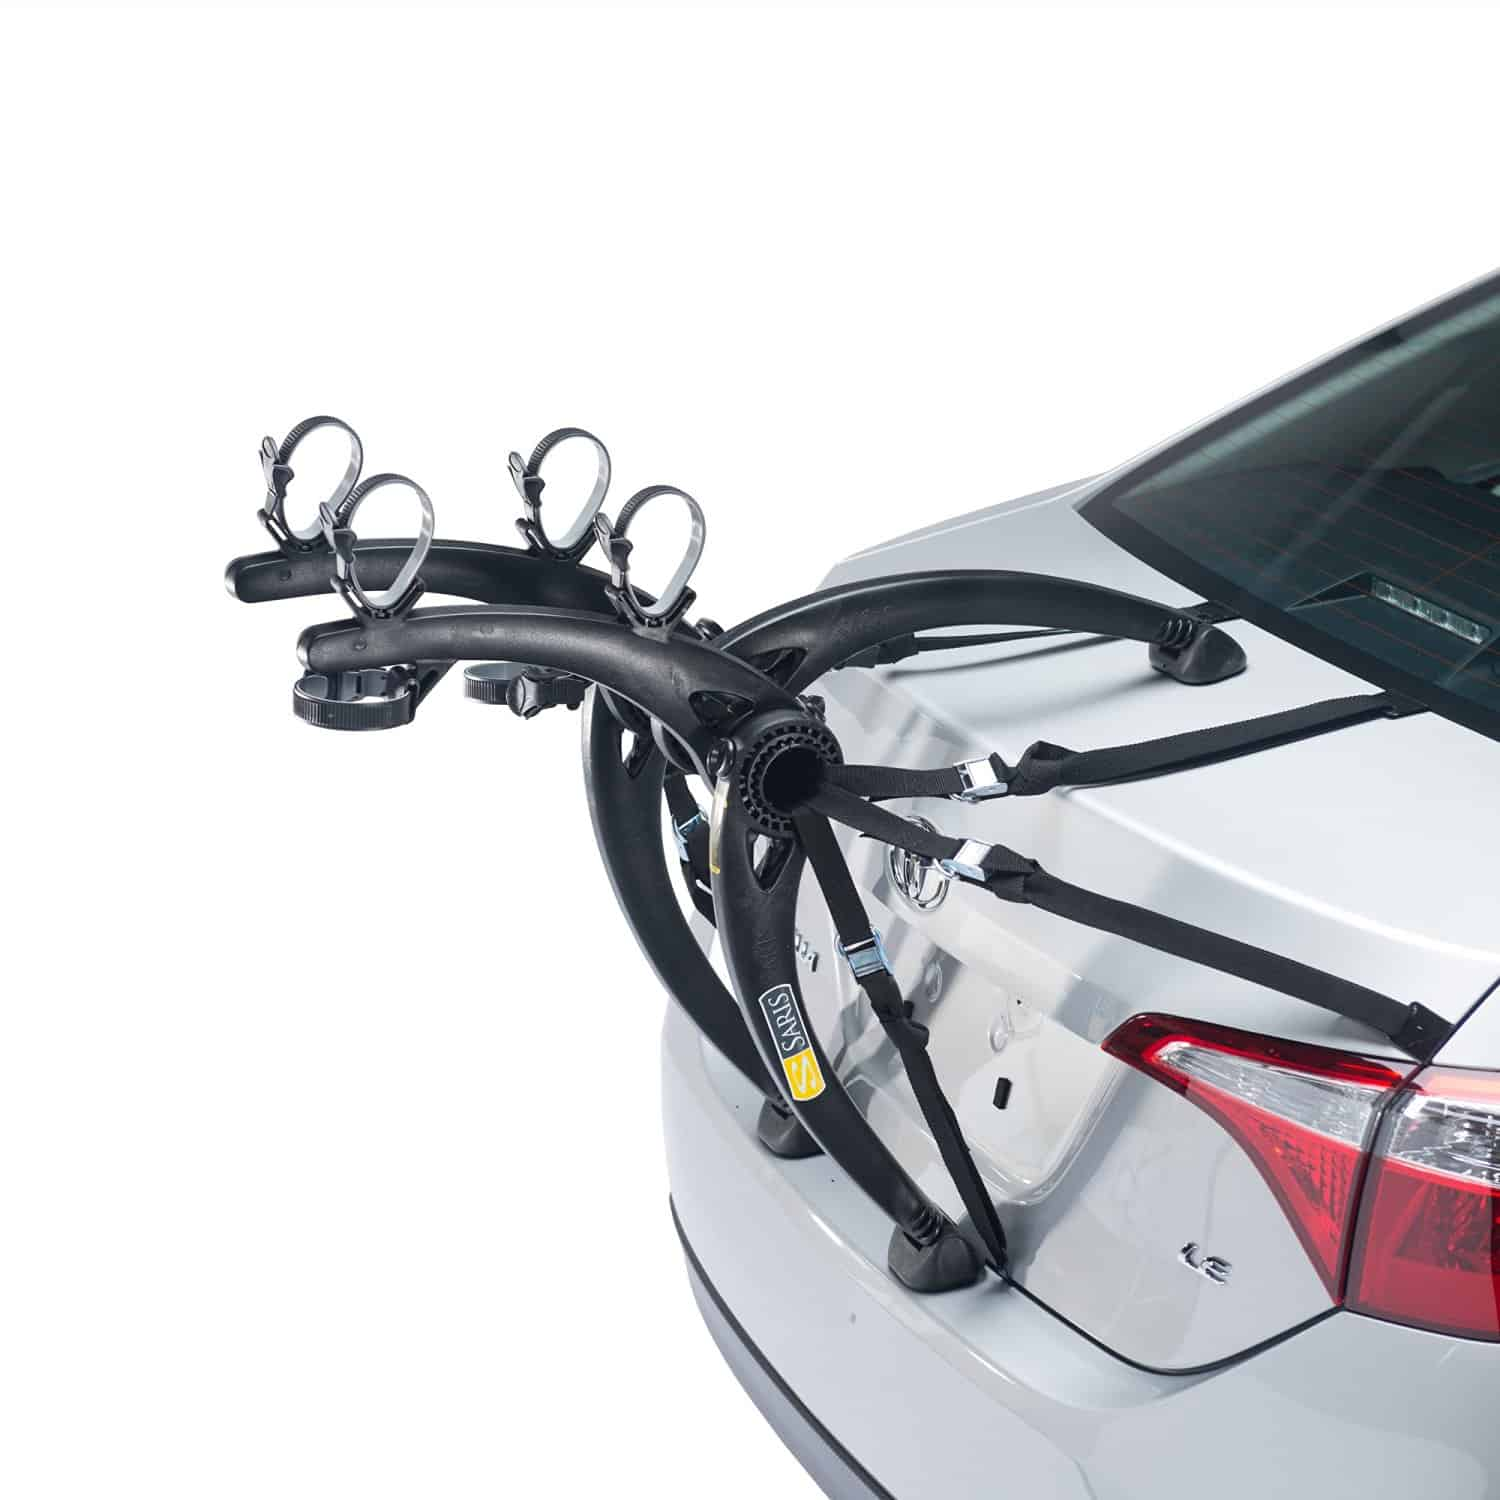 Best Trunk Bike Racks For Cars 2018 Buyer S Guide And